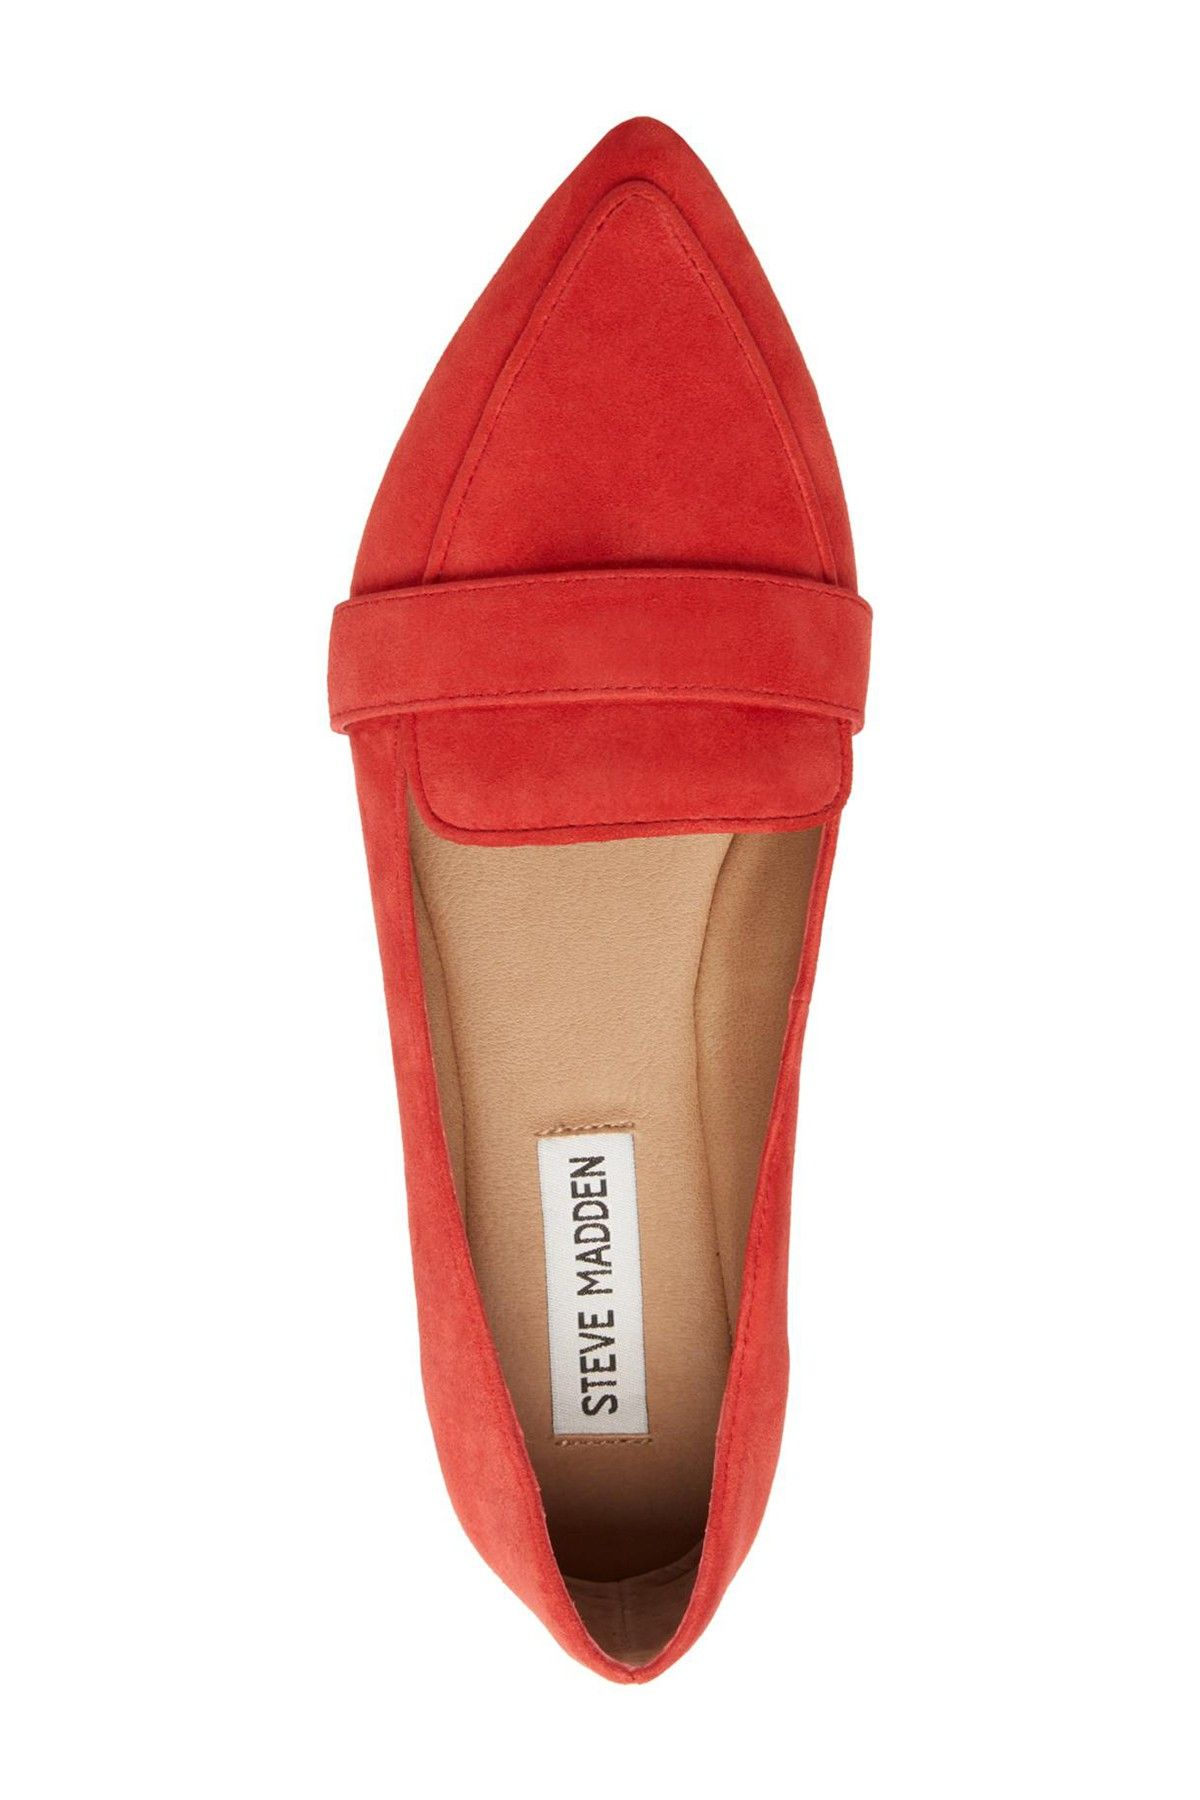 01c942fac21 Jainna Suede Penny Loafer by Steve Madden Details Chic loafer with a  pointed toe adds a